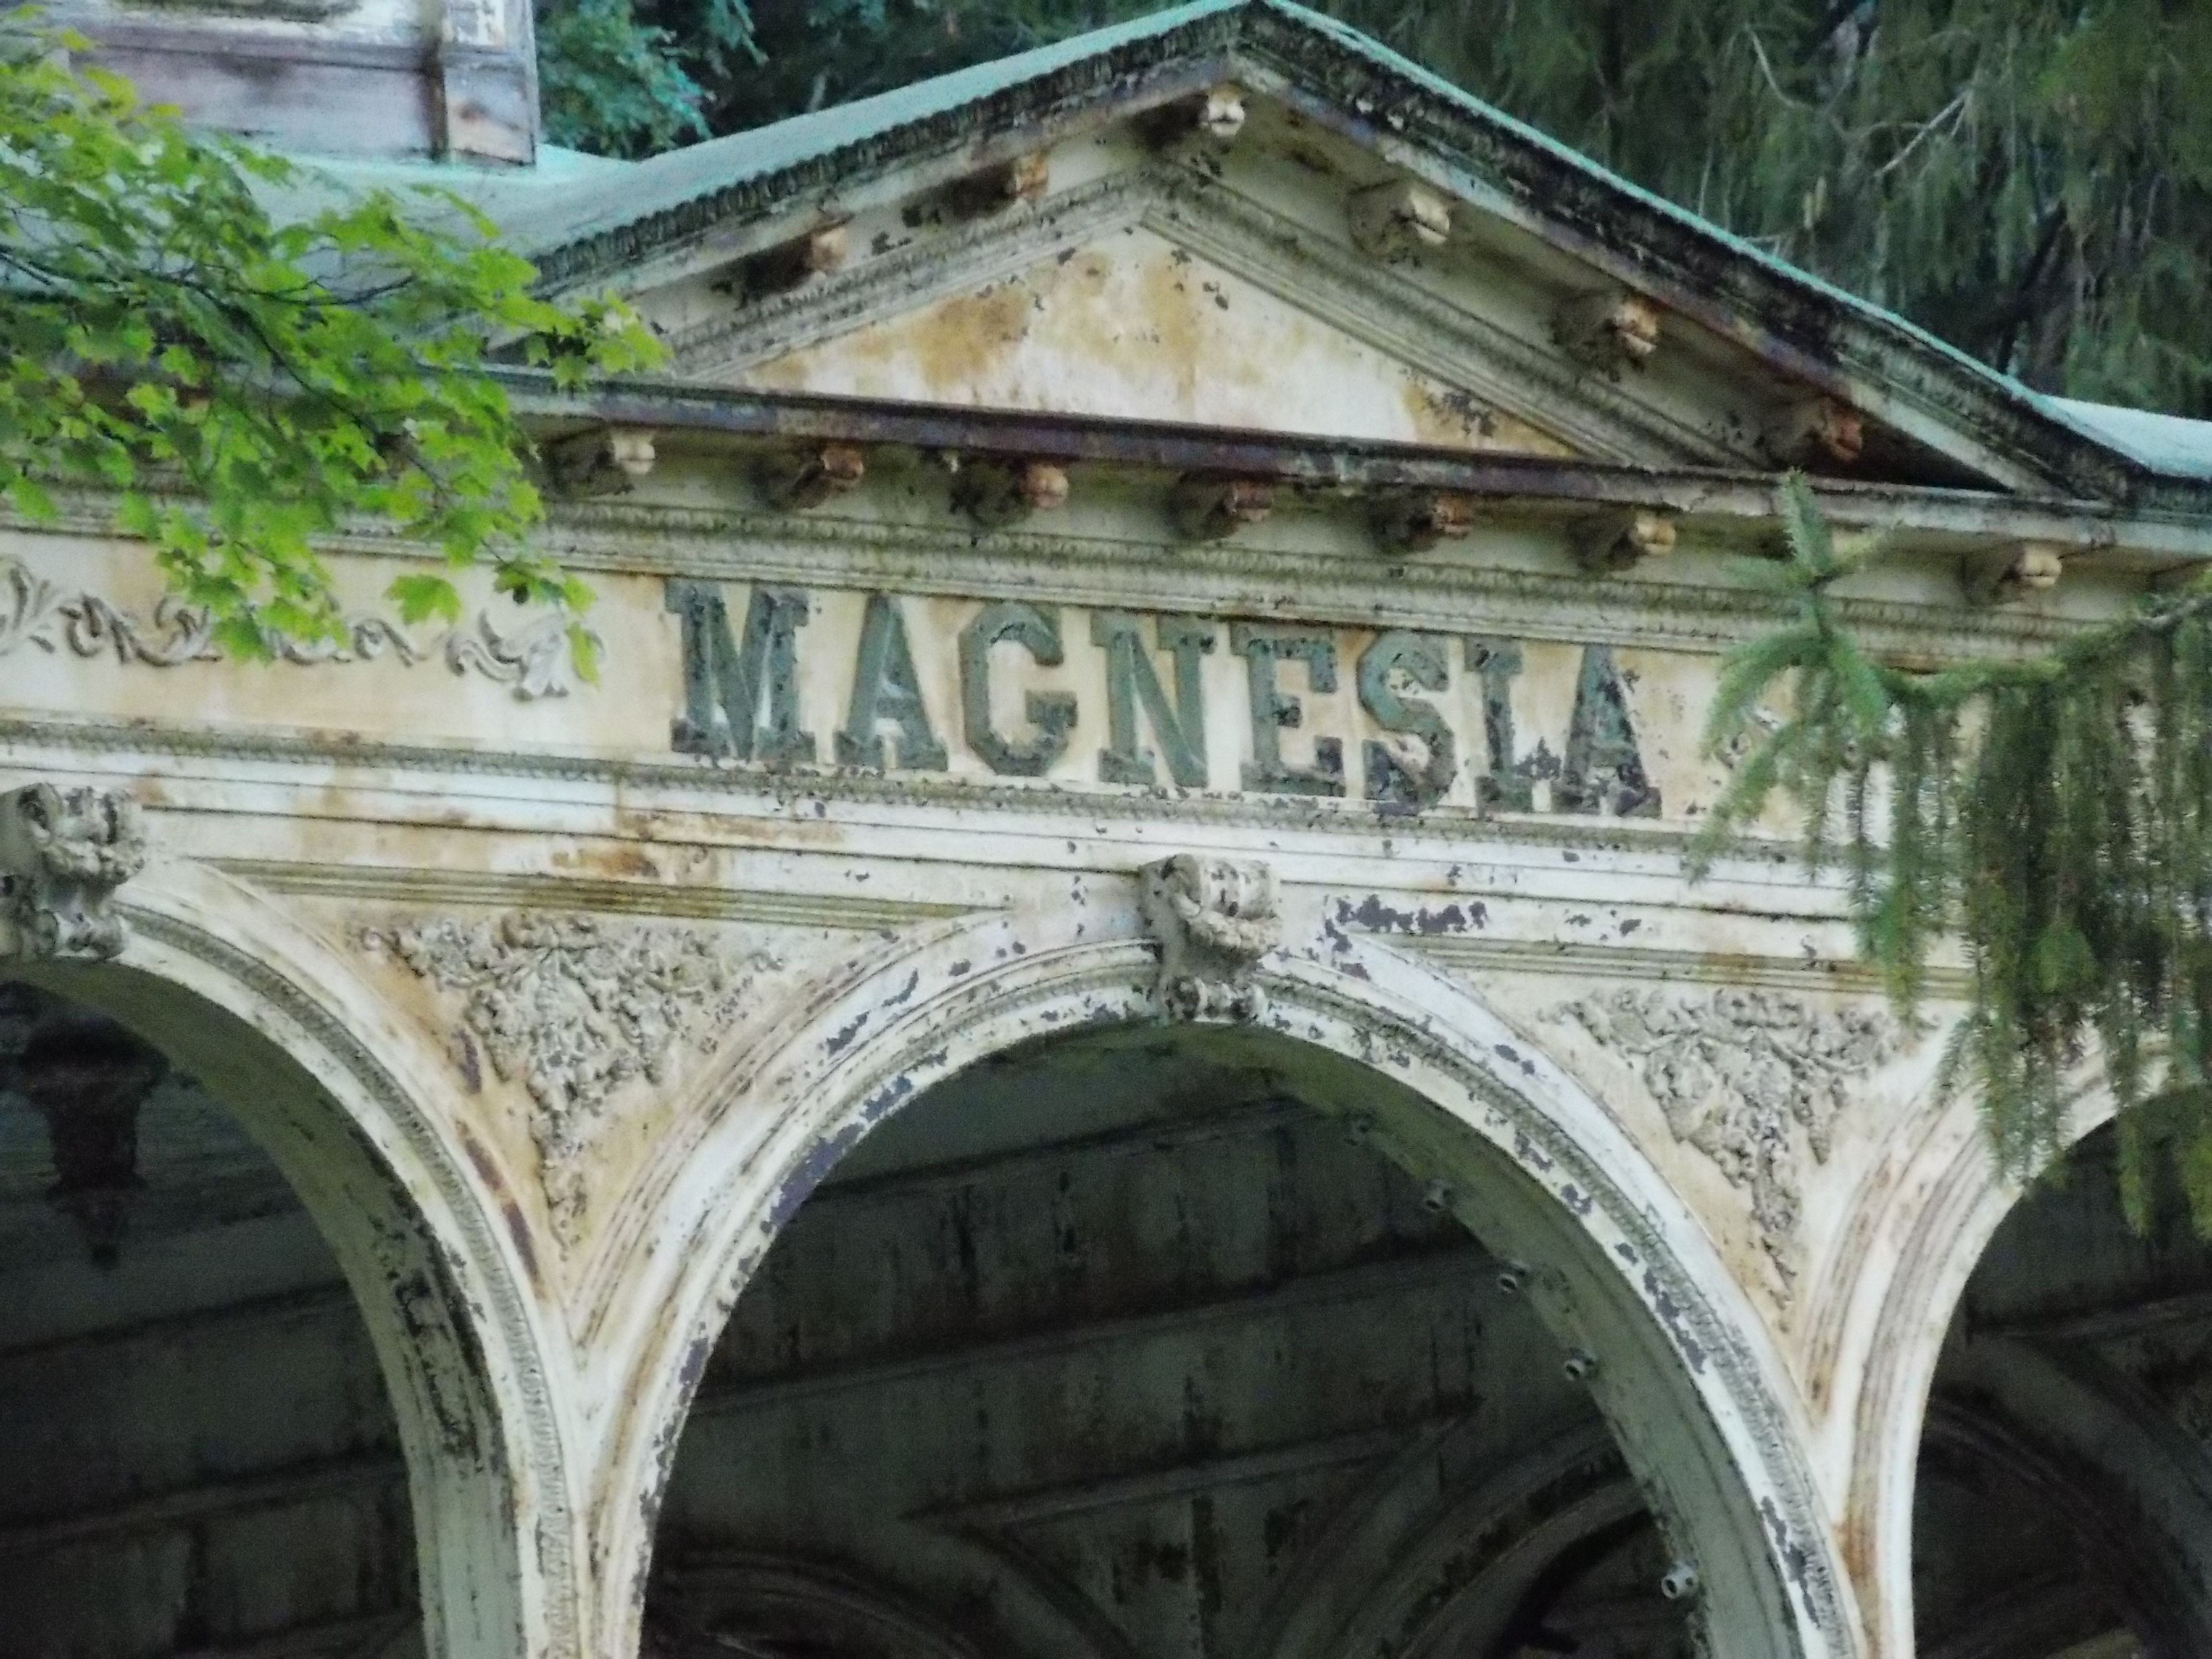 Magnesia Temple Sharon springs, Cat cafe, Local legends